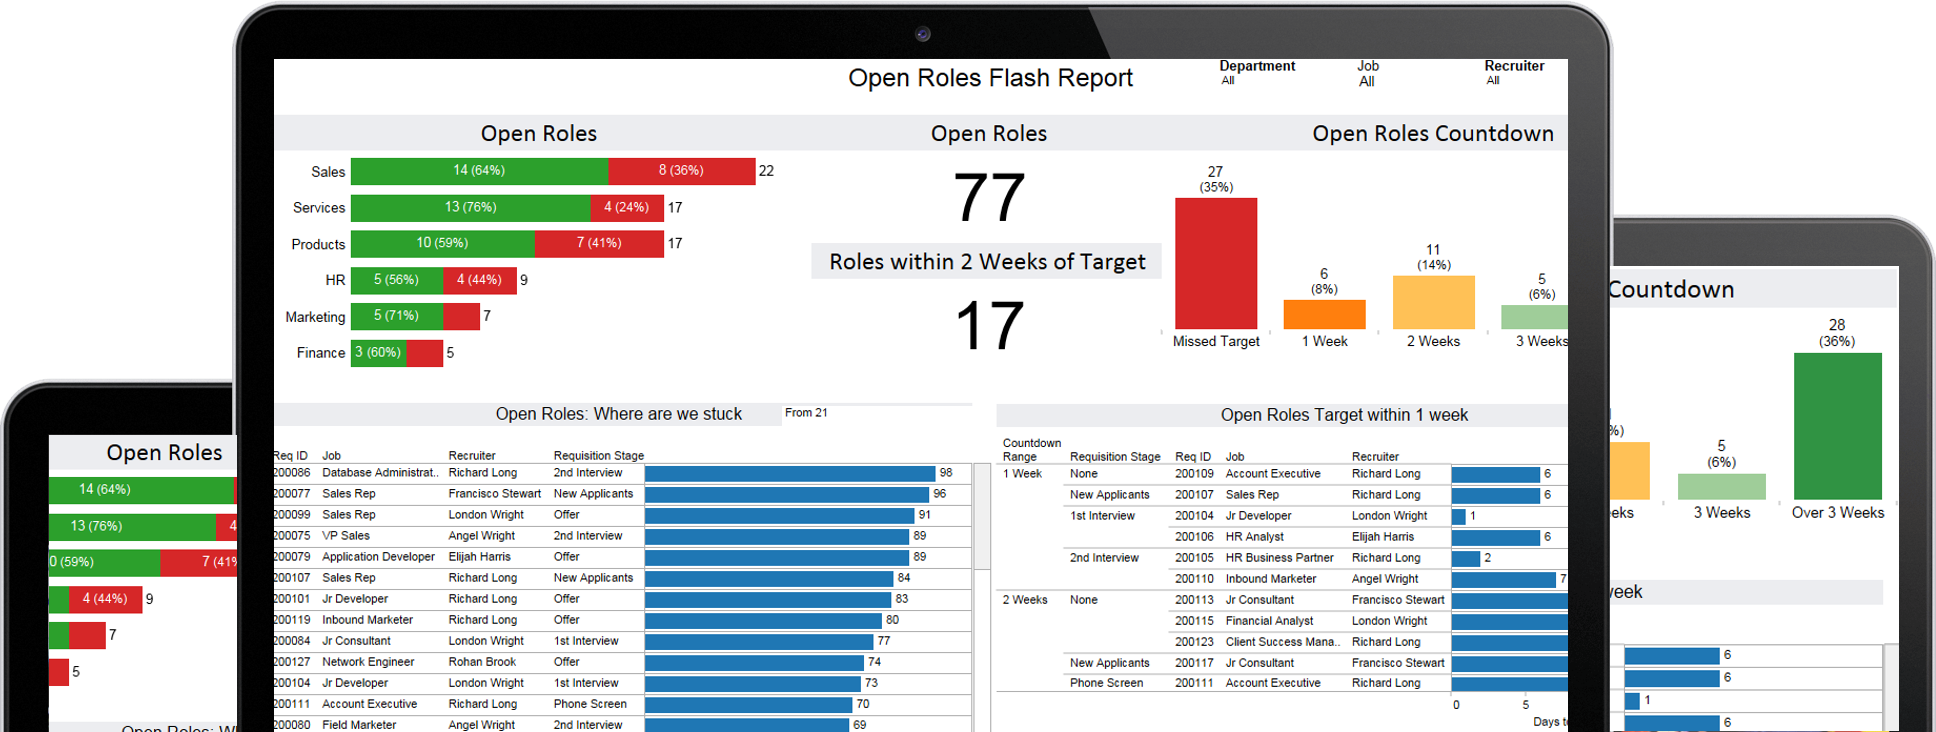 ipad-open-roles-flash-report-peopleinsight-1.png